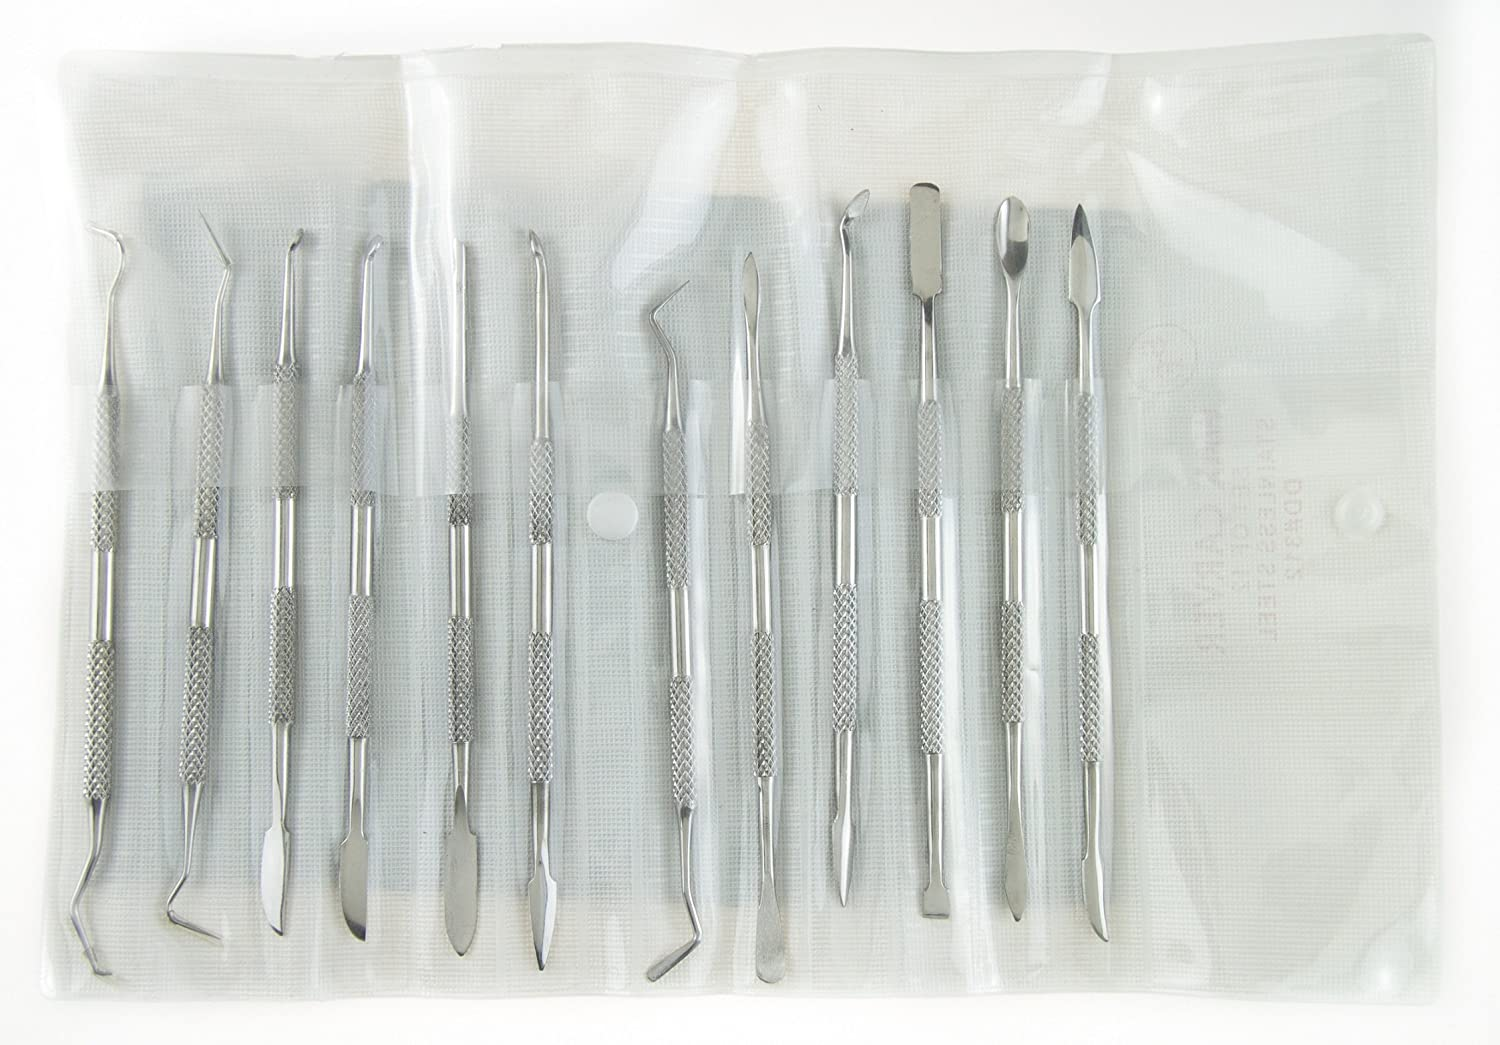 12-Piece Stainless Steel Double-Sided Wax Carvers Set